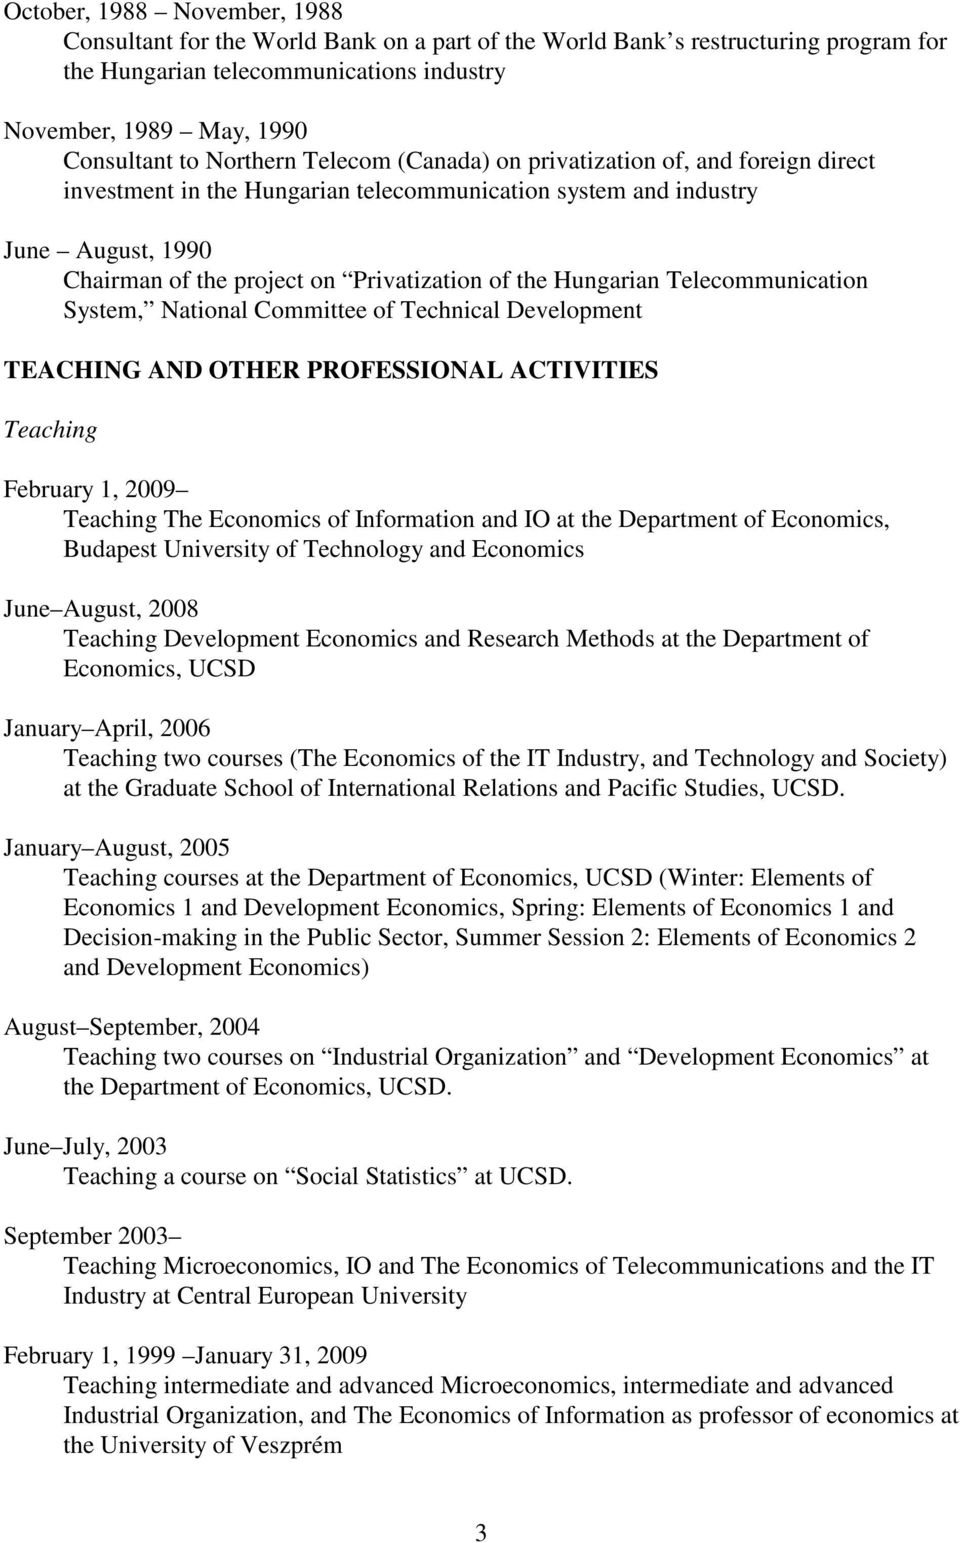 Hungarian Telecommunication System, National Committee of Technical Development TEACHING AND OTHER PROFESSIONAL ACTIVITIES Teaching February 1, 2009 Teaching The Economics of Information and IO at